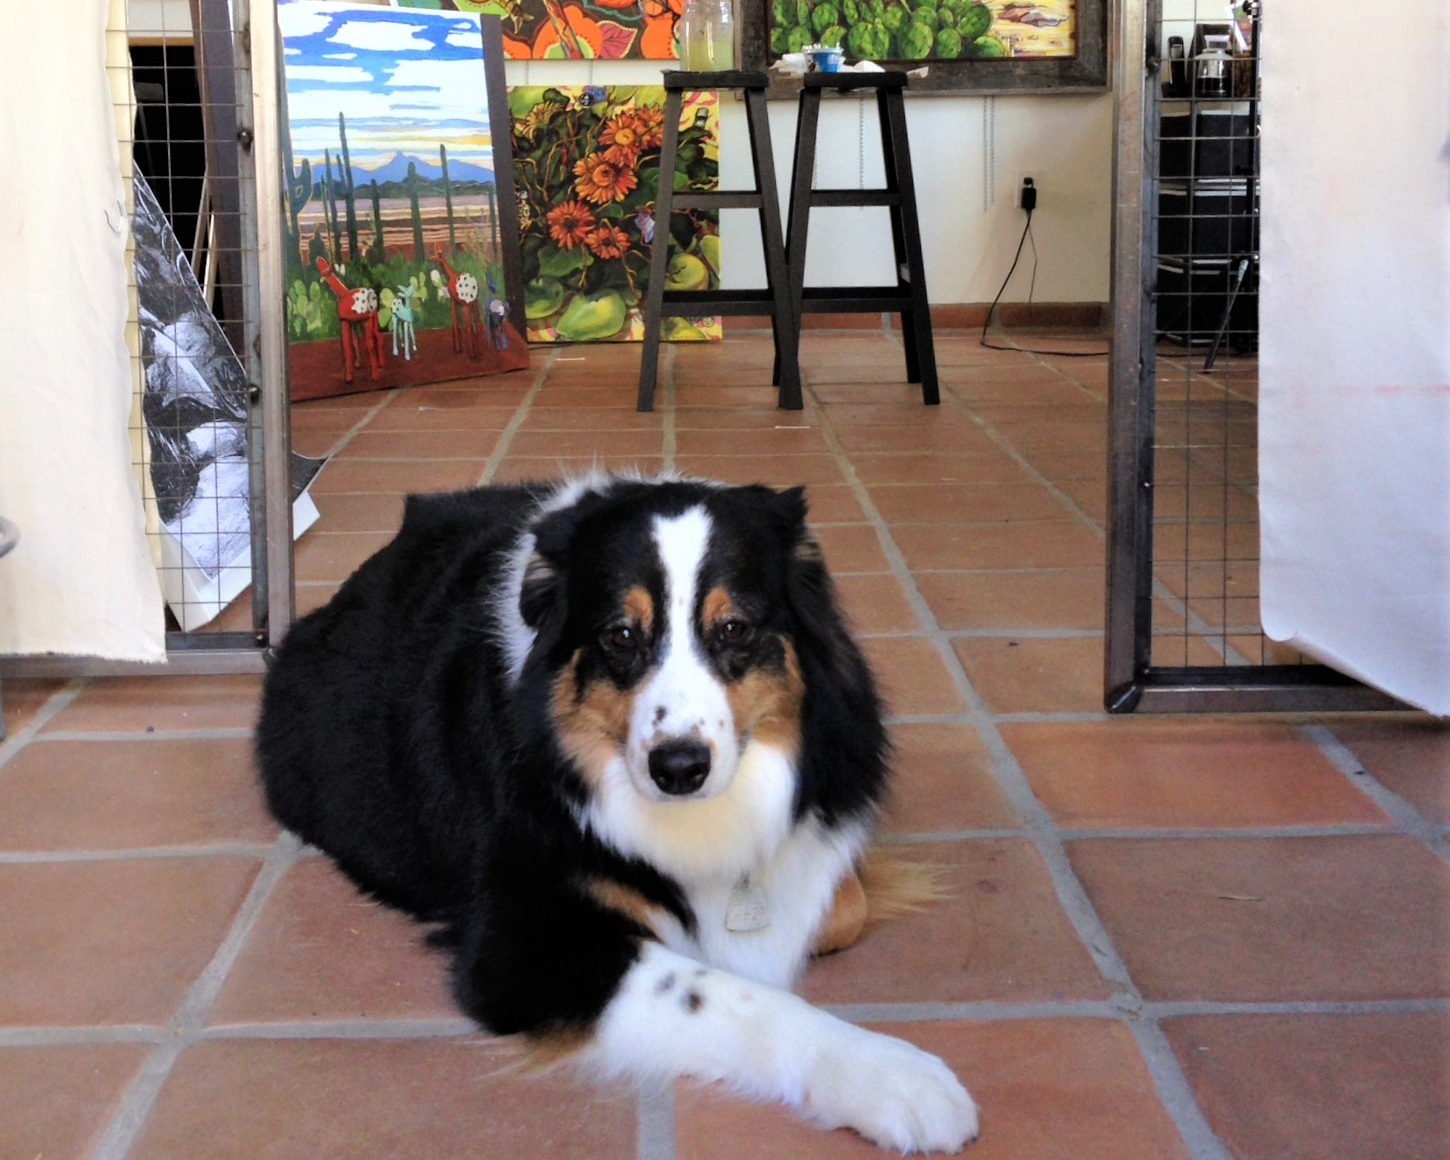 This cute guy was Dobs. He was a wonderful friend and companion. He is photographed here at my Aunt's studio.